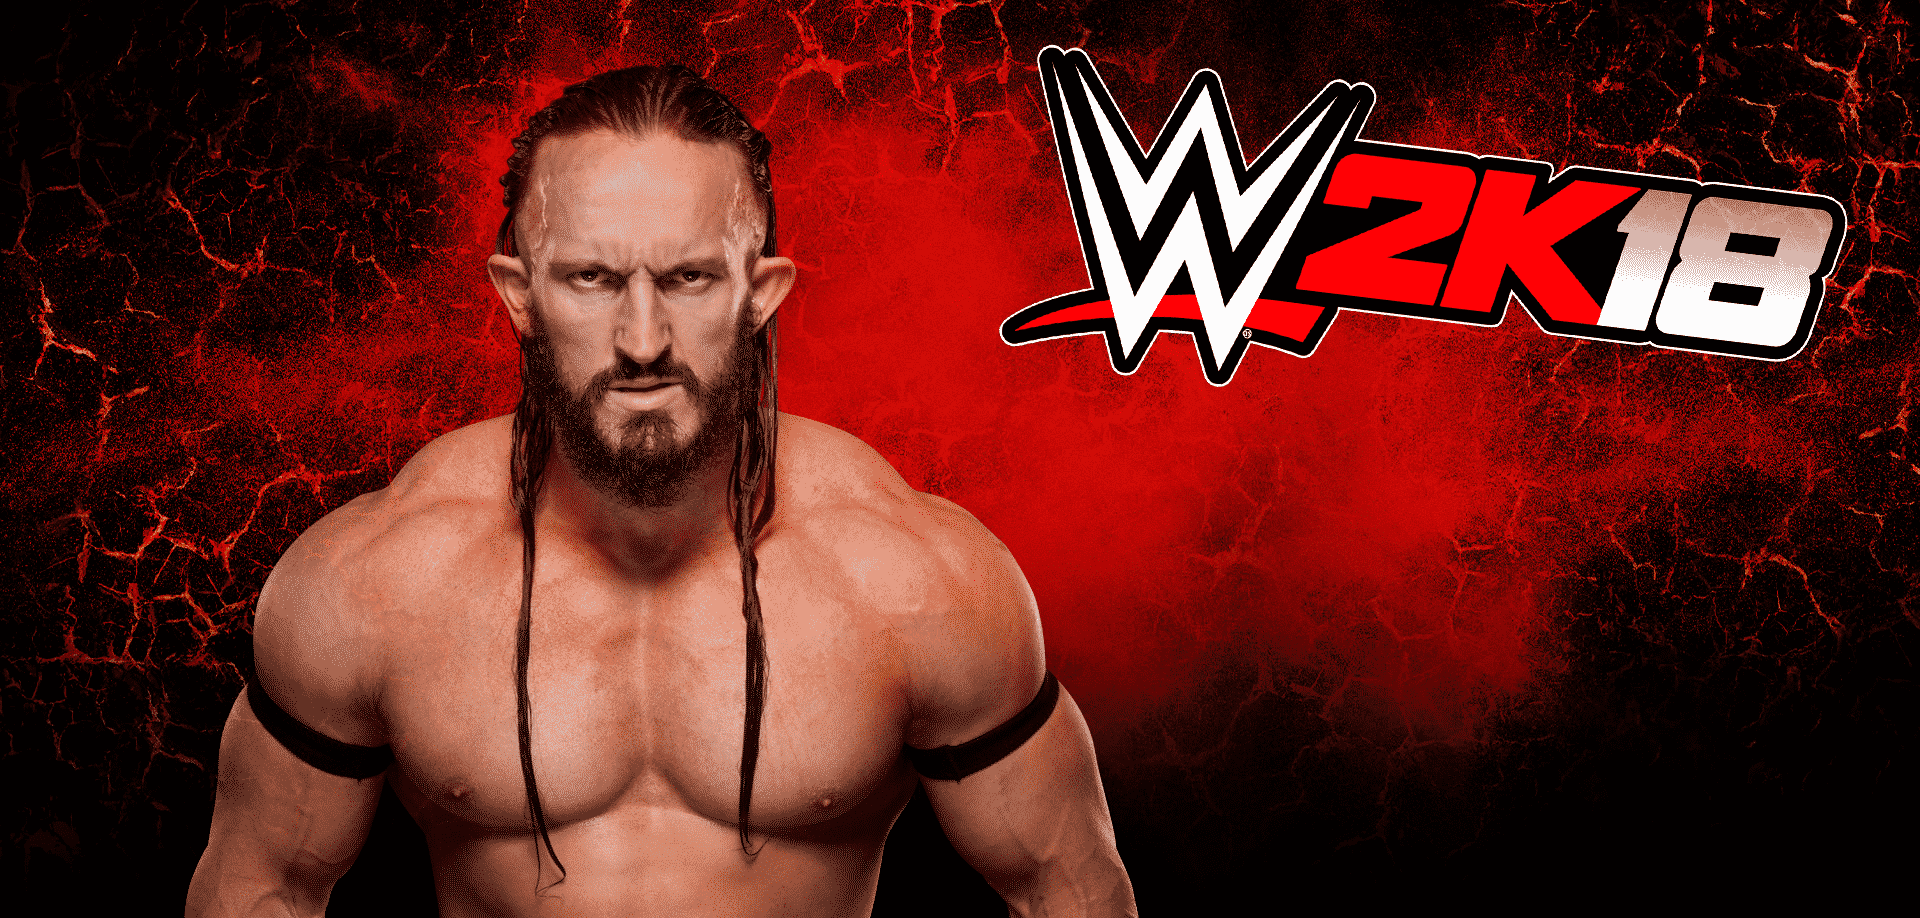 What This Means For WWE 2K18